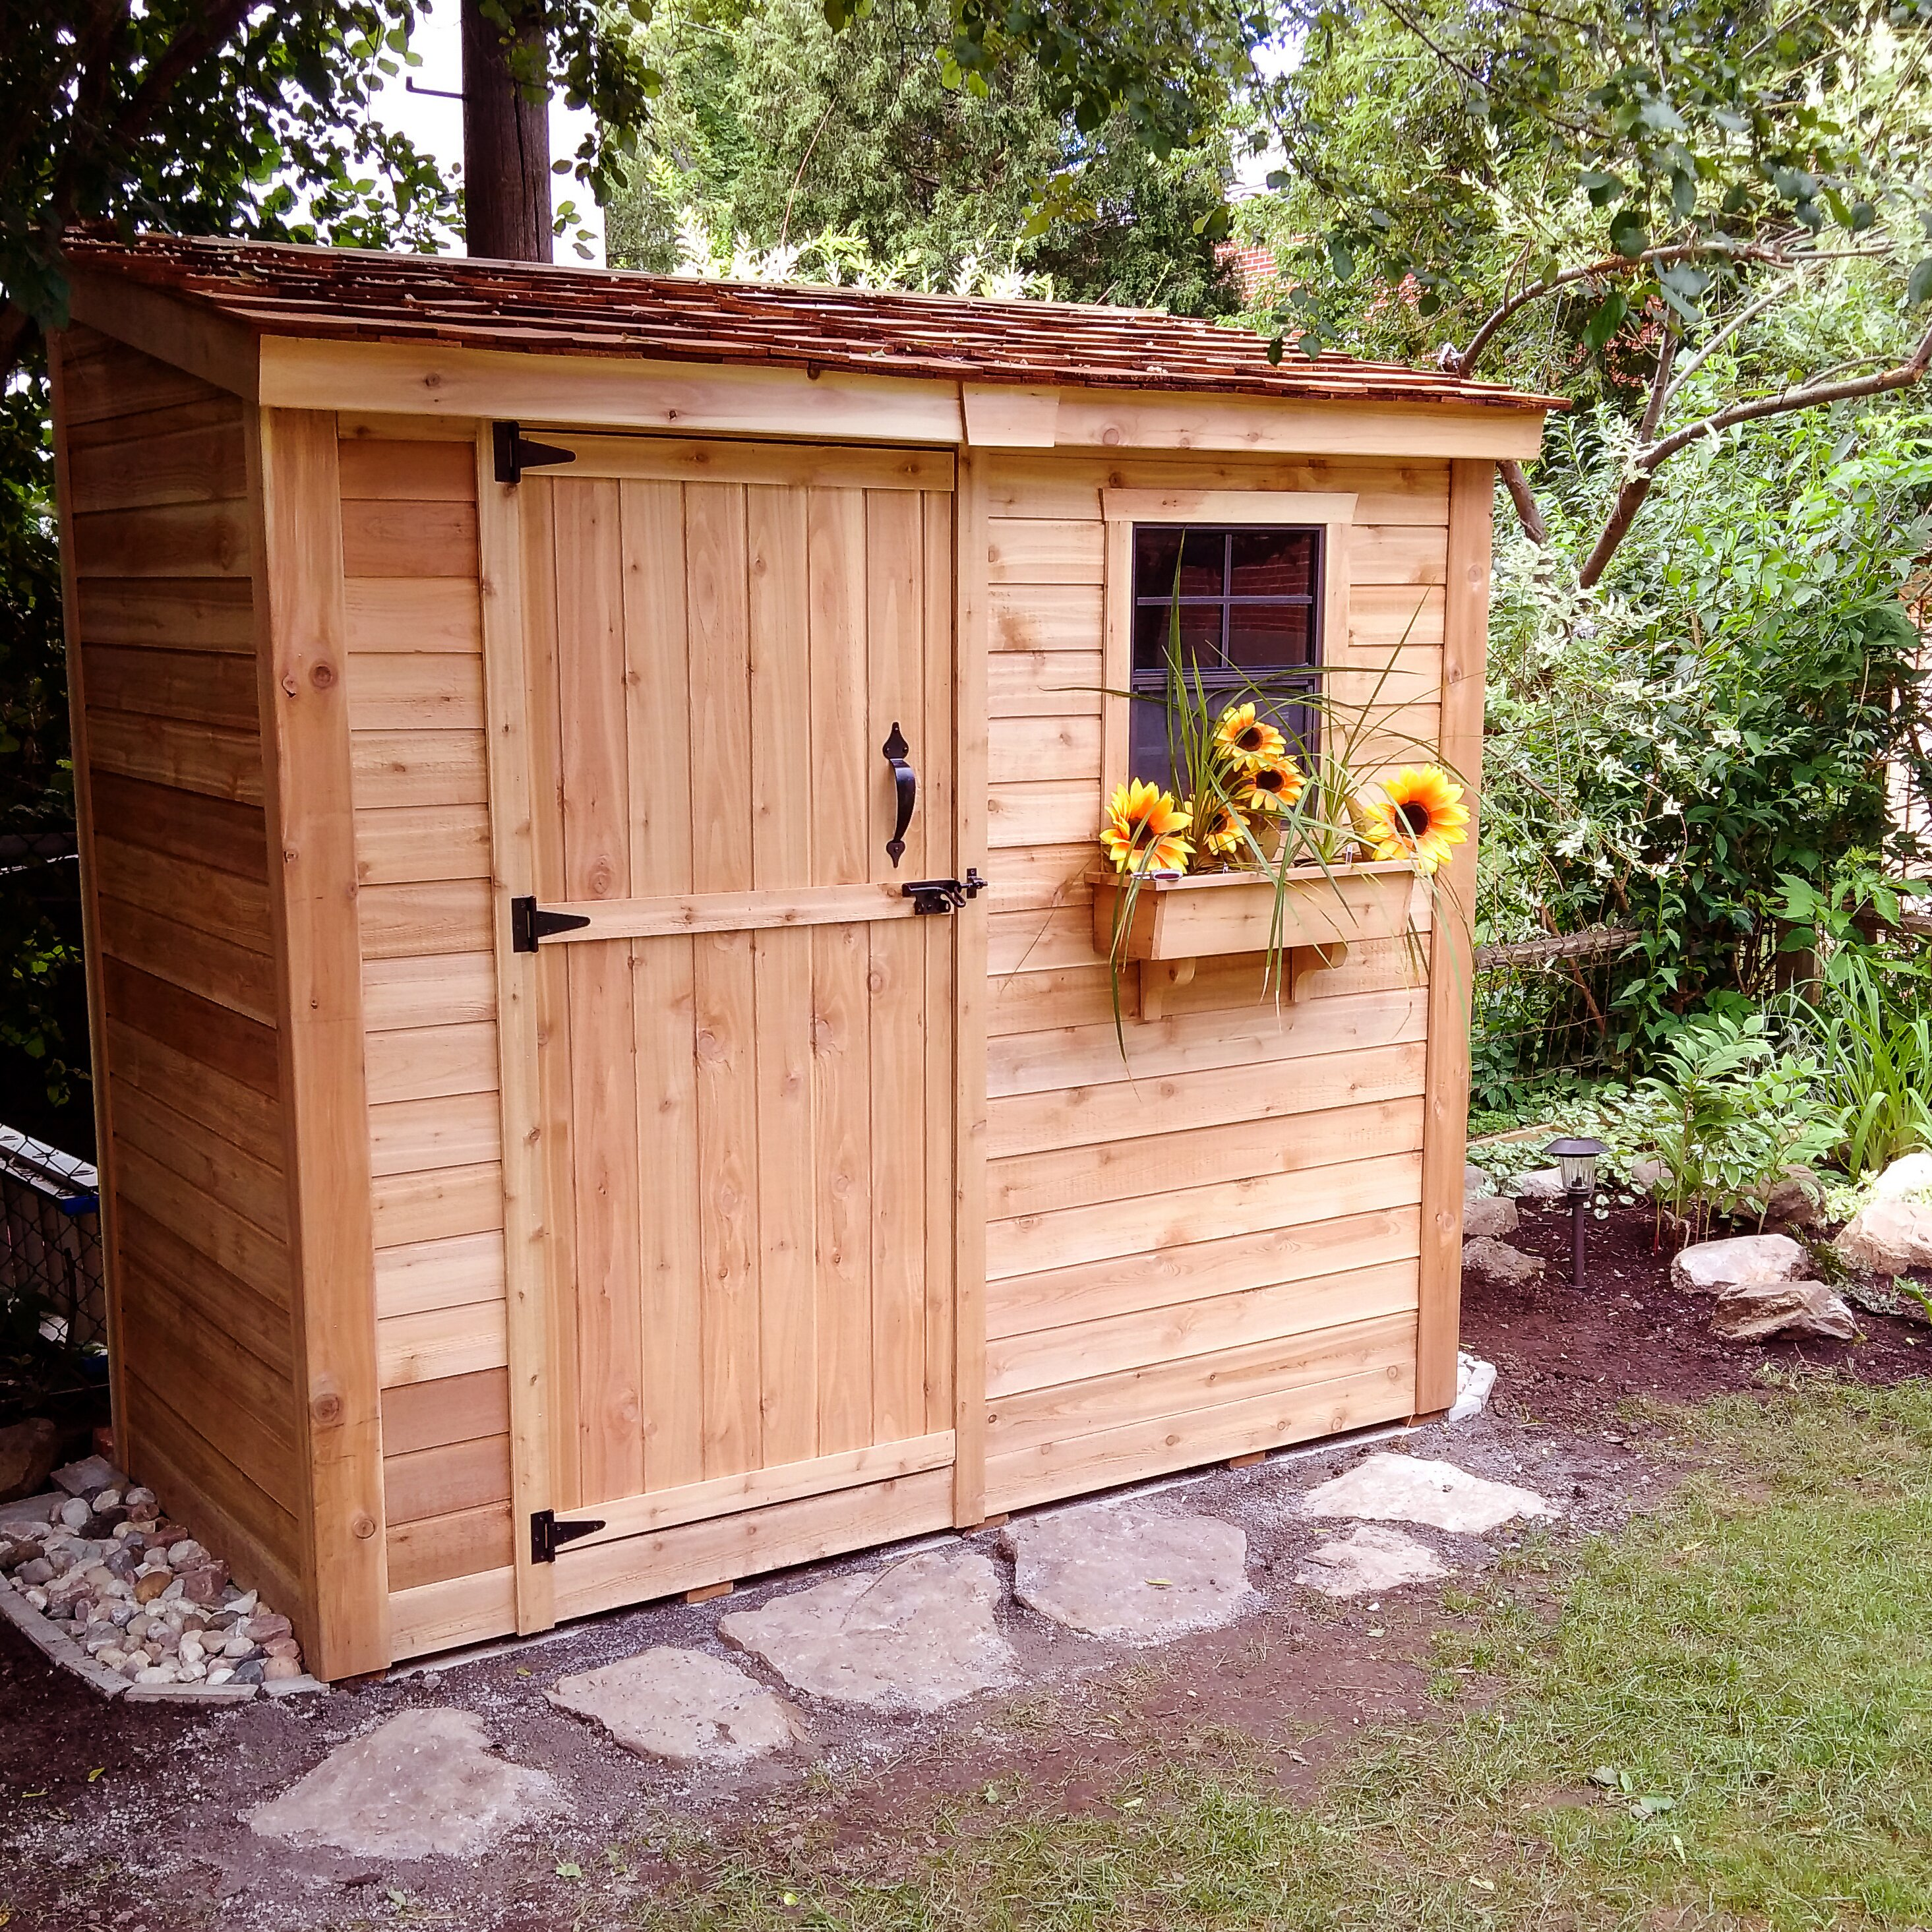 SpaceSaver 8 Ft. W X 4 Ft. D Wood Lean-To Shed